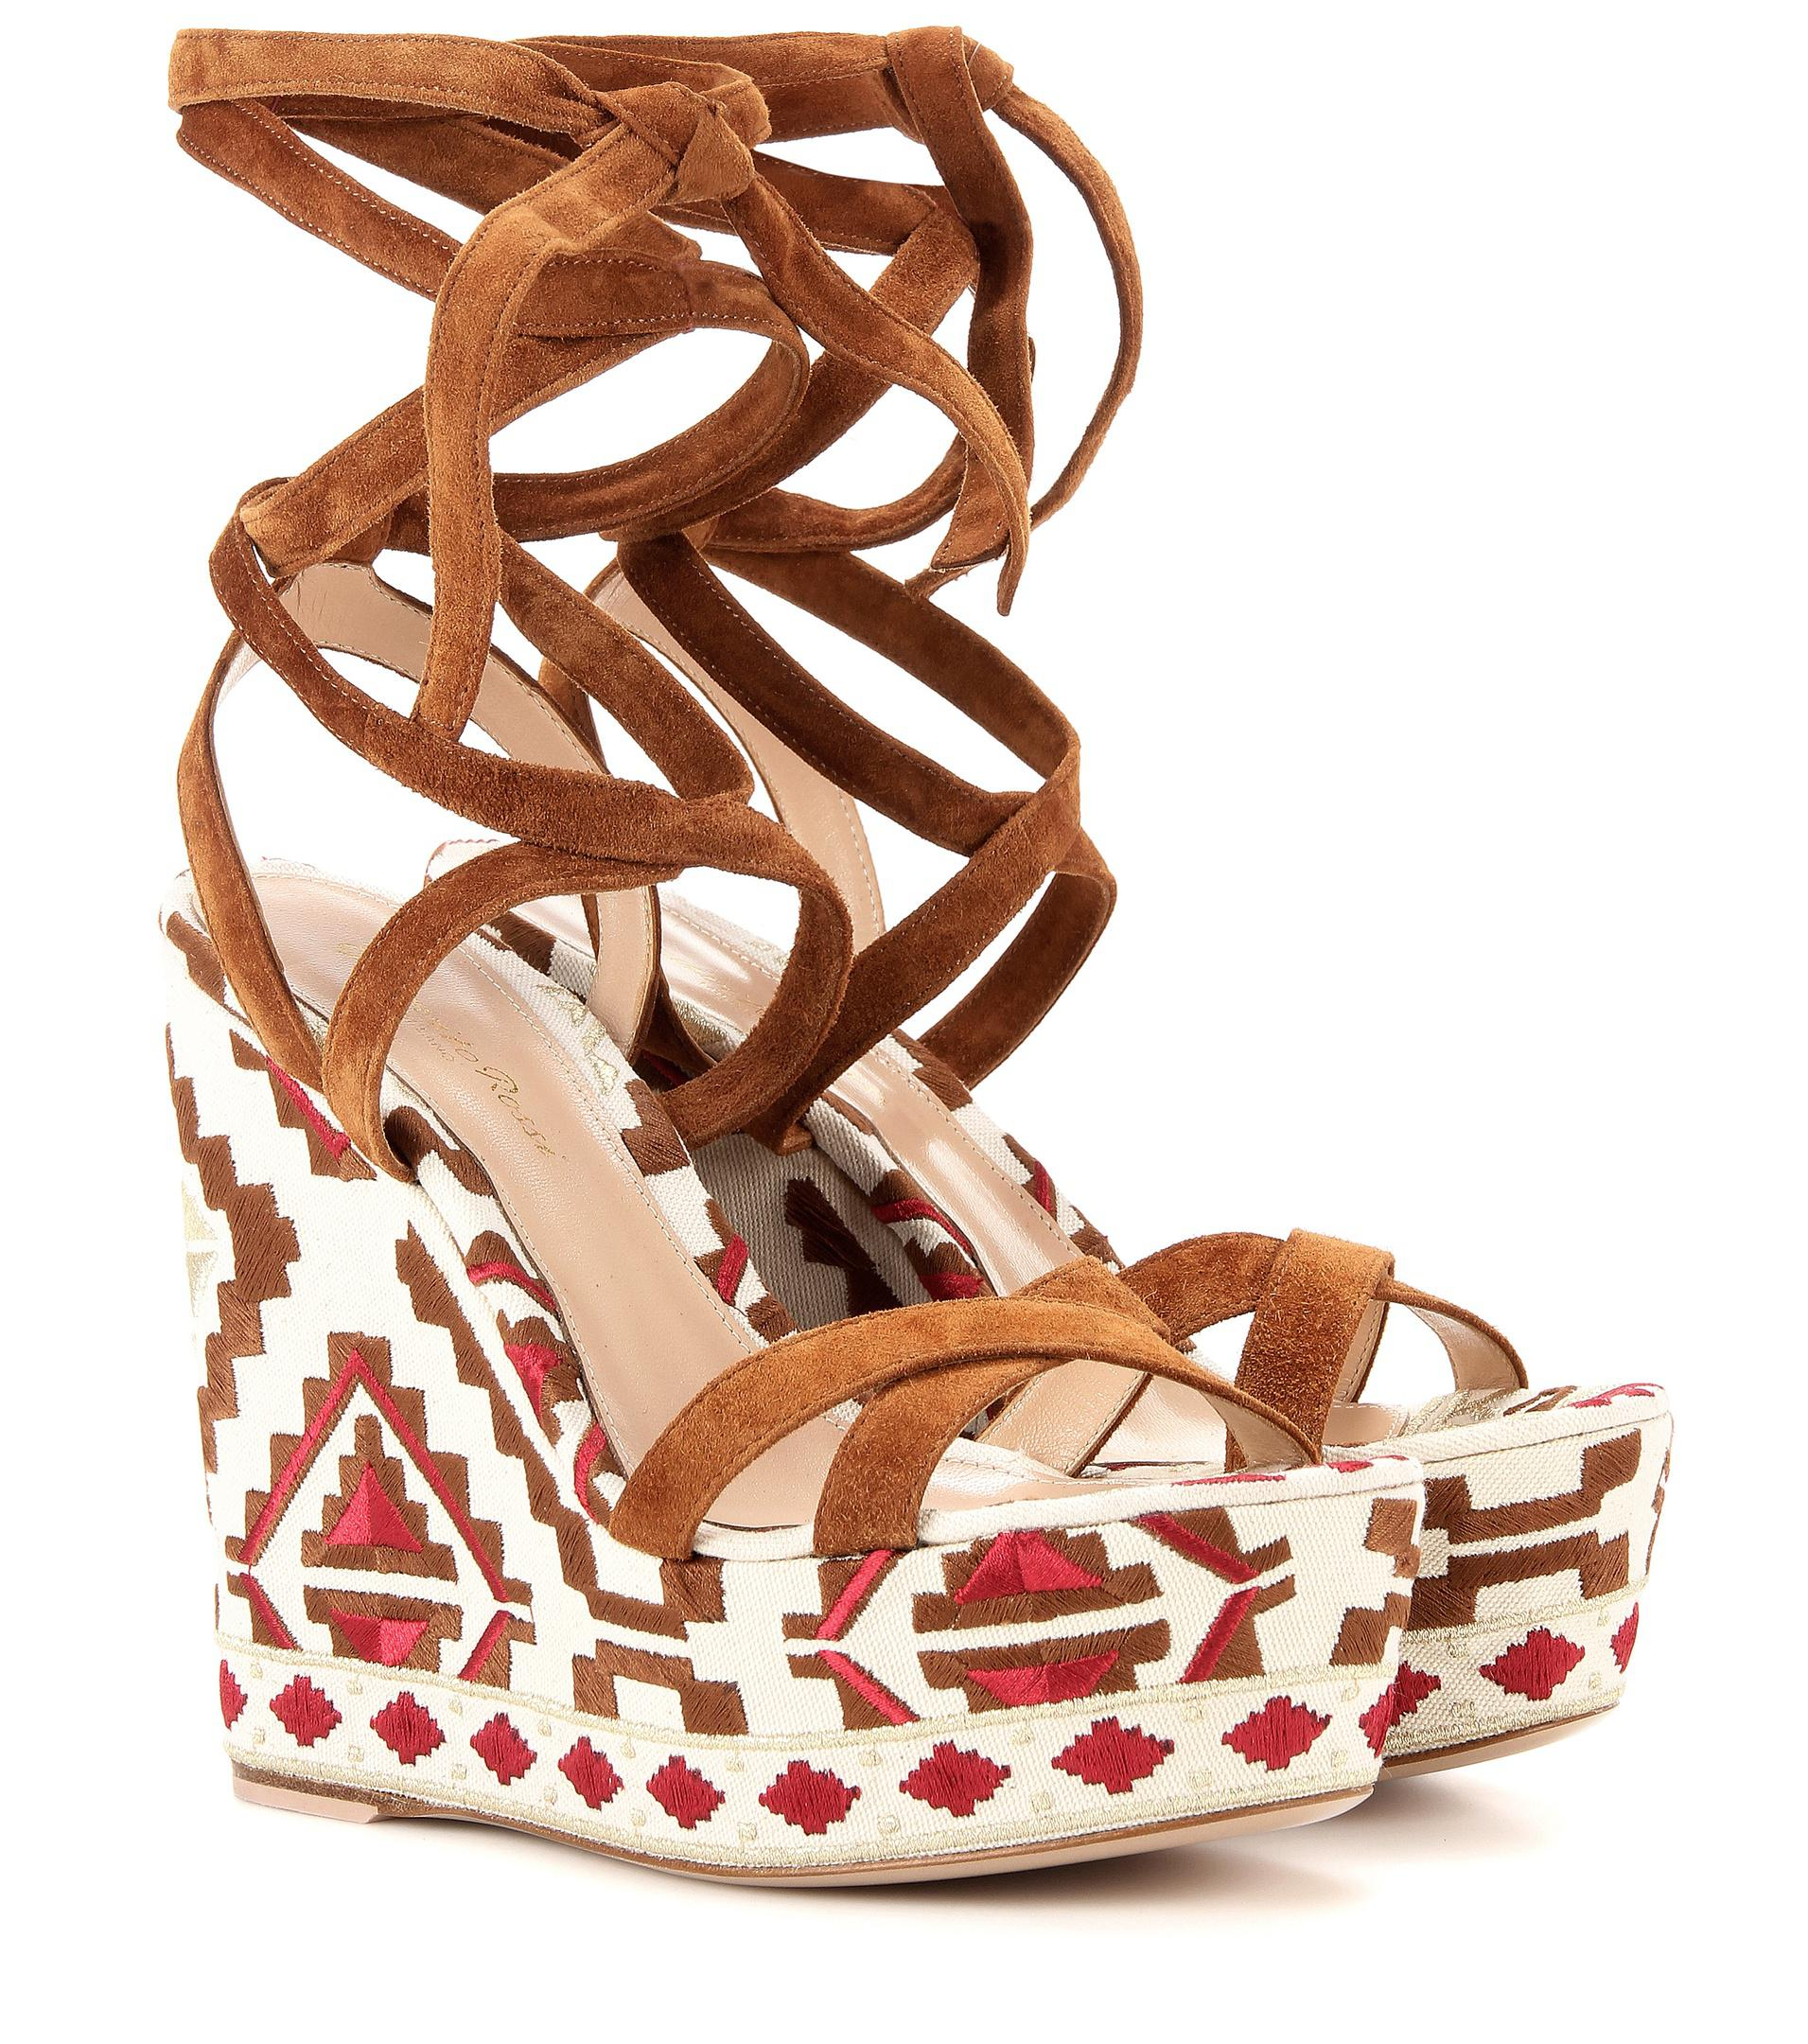 discount low cost Gianvito Rossi Cheyenne Embroidered Wedge Sandals 2014 new sale online discount Inexpensive free shipping professional 2Cjp2